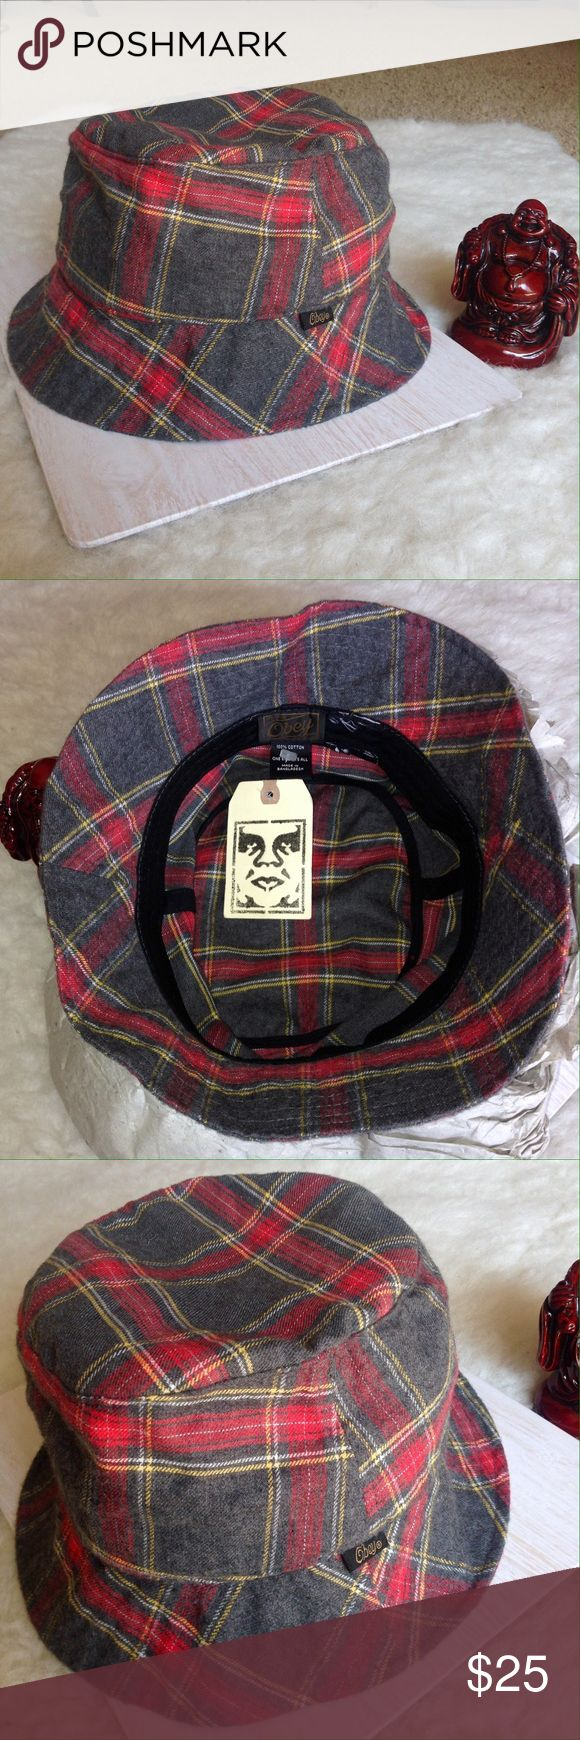 NWT Obey Plaid Glasgow Bucket Hat NWT Obey Plaid Glasgow Bucket Hat One Size Fits All. Colors: Gray / Grey, Red Minor flaw inside the hat. New with Tags ($40) Obey Accessories Hats